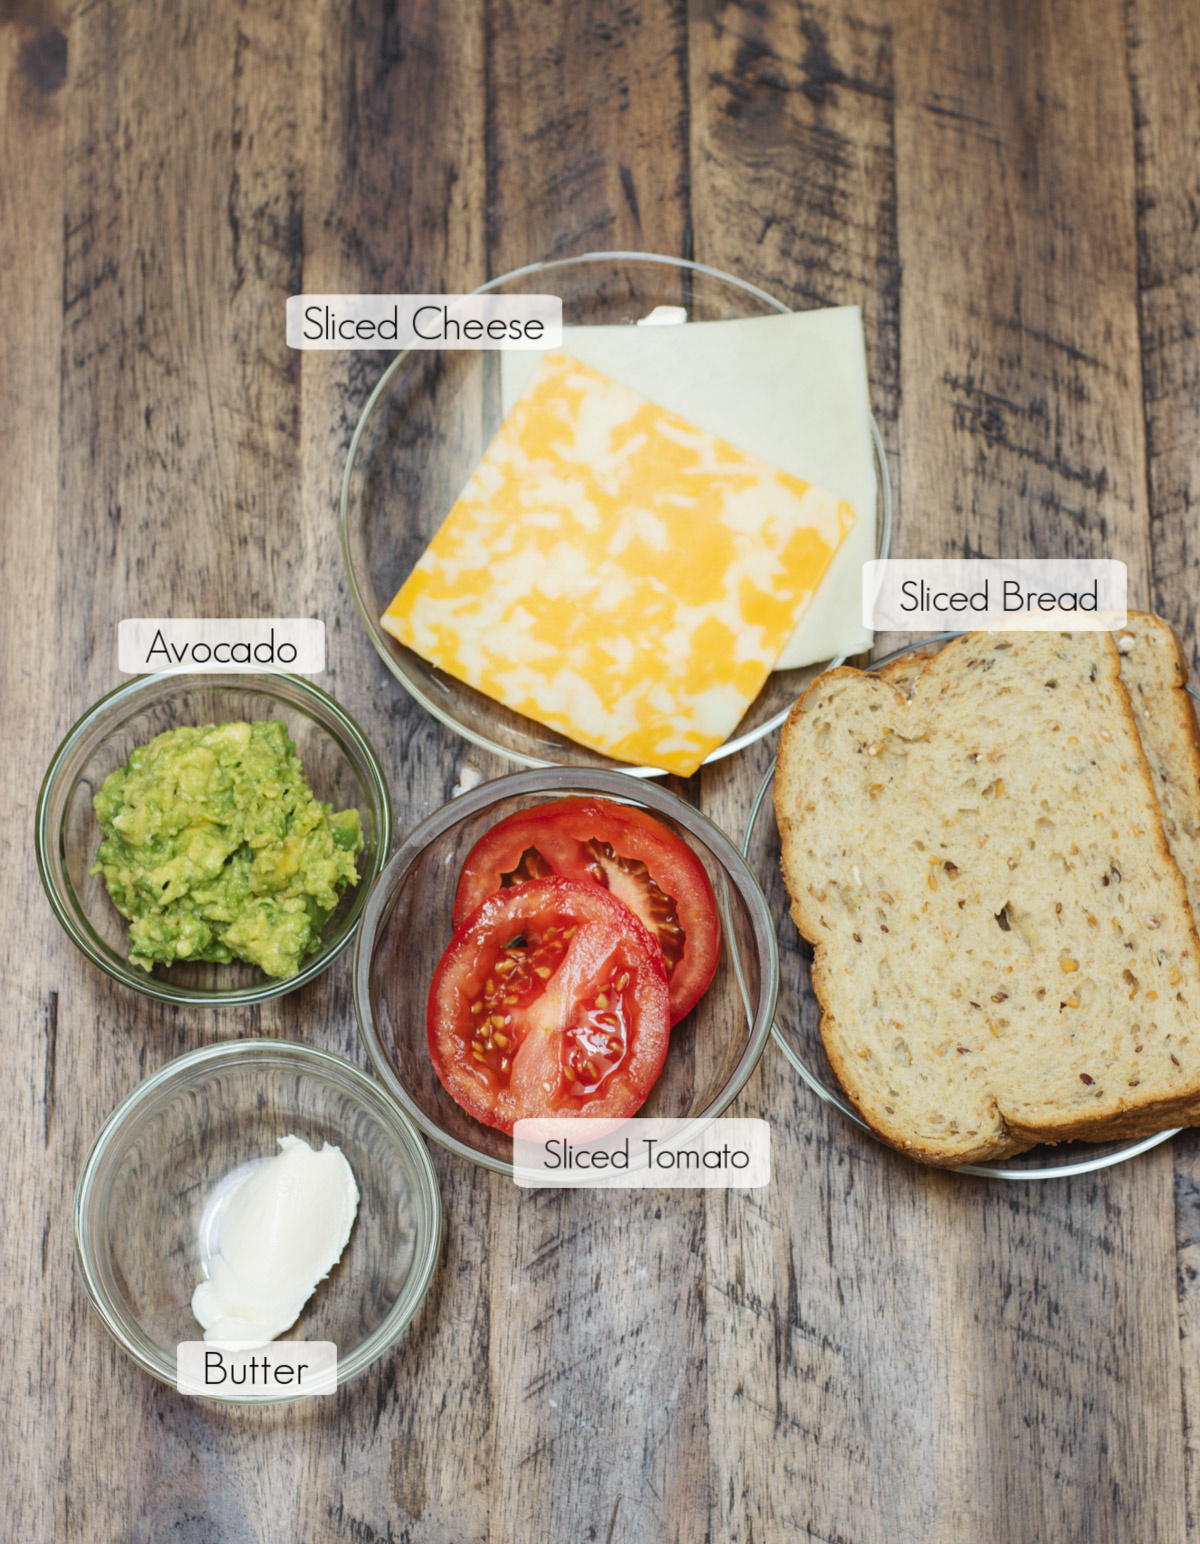 Labeled ingredients in bowls to make a tomato and avocado grilled cheese sandwich.